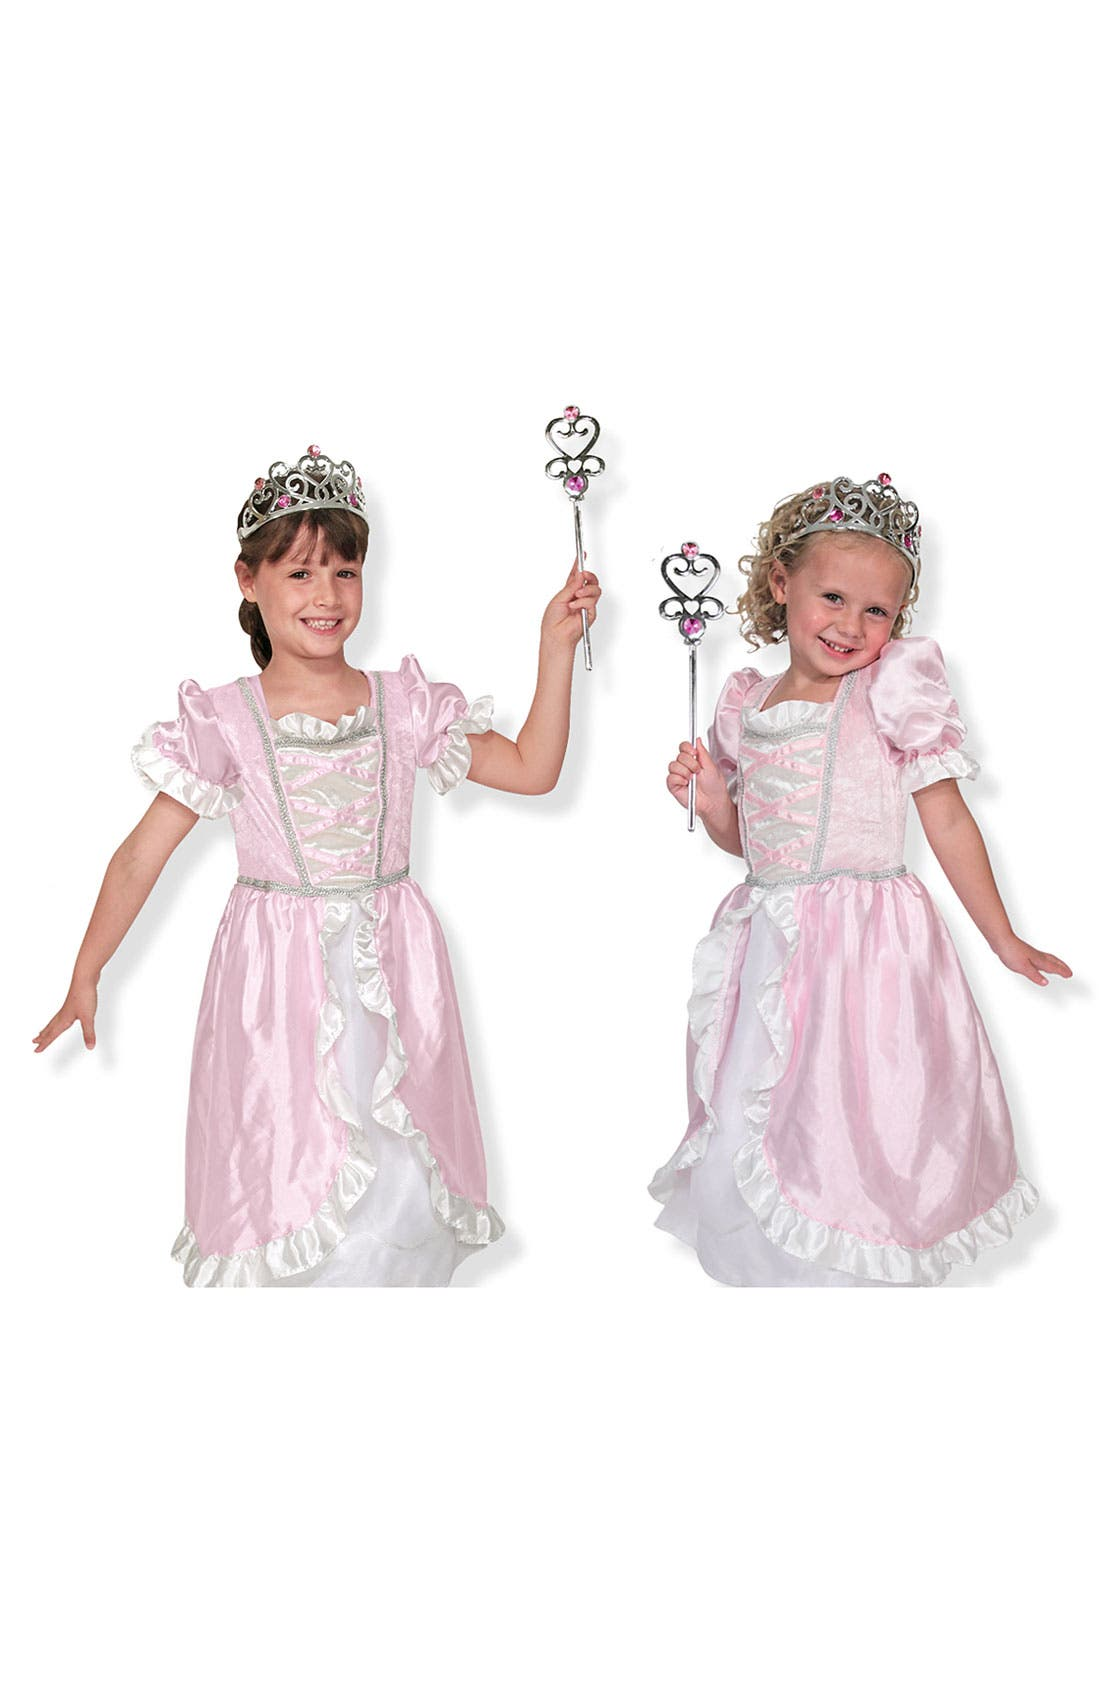 Alternate Image 1 Selected - Melissa & Doug Princess Costume (Little Girls)